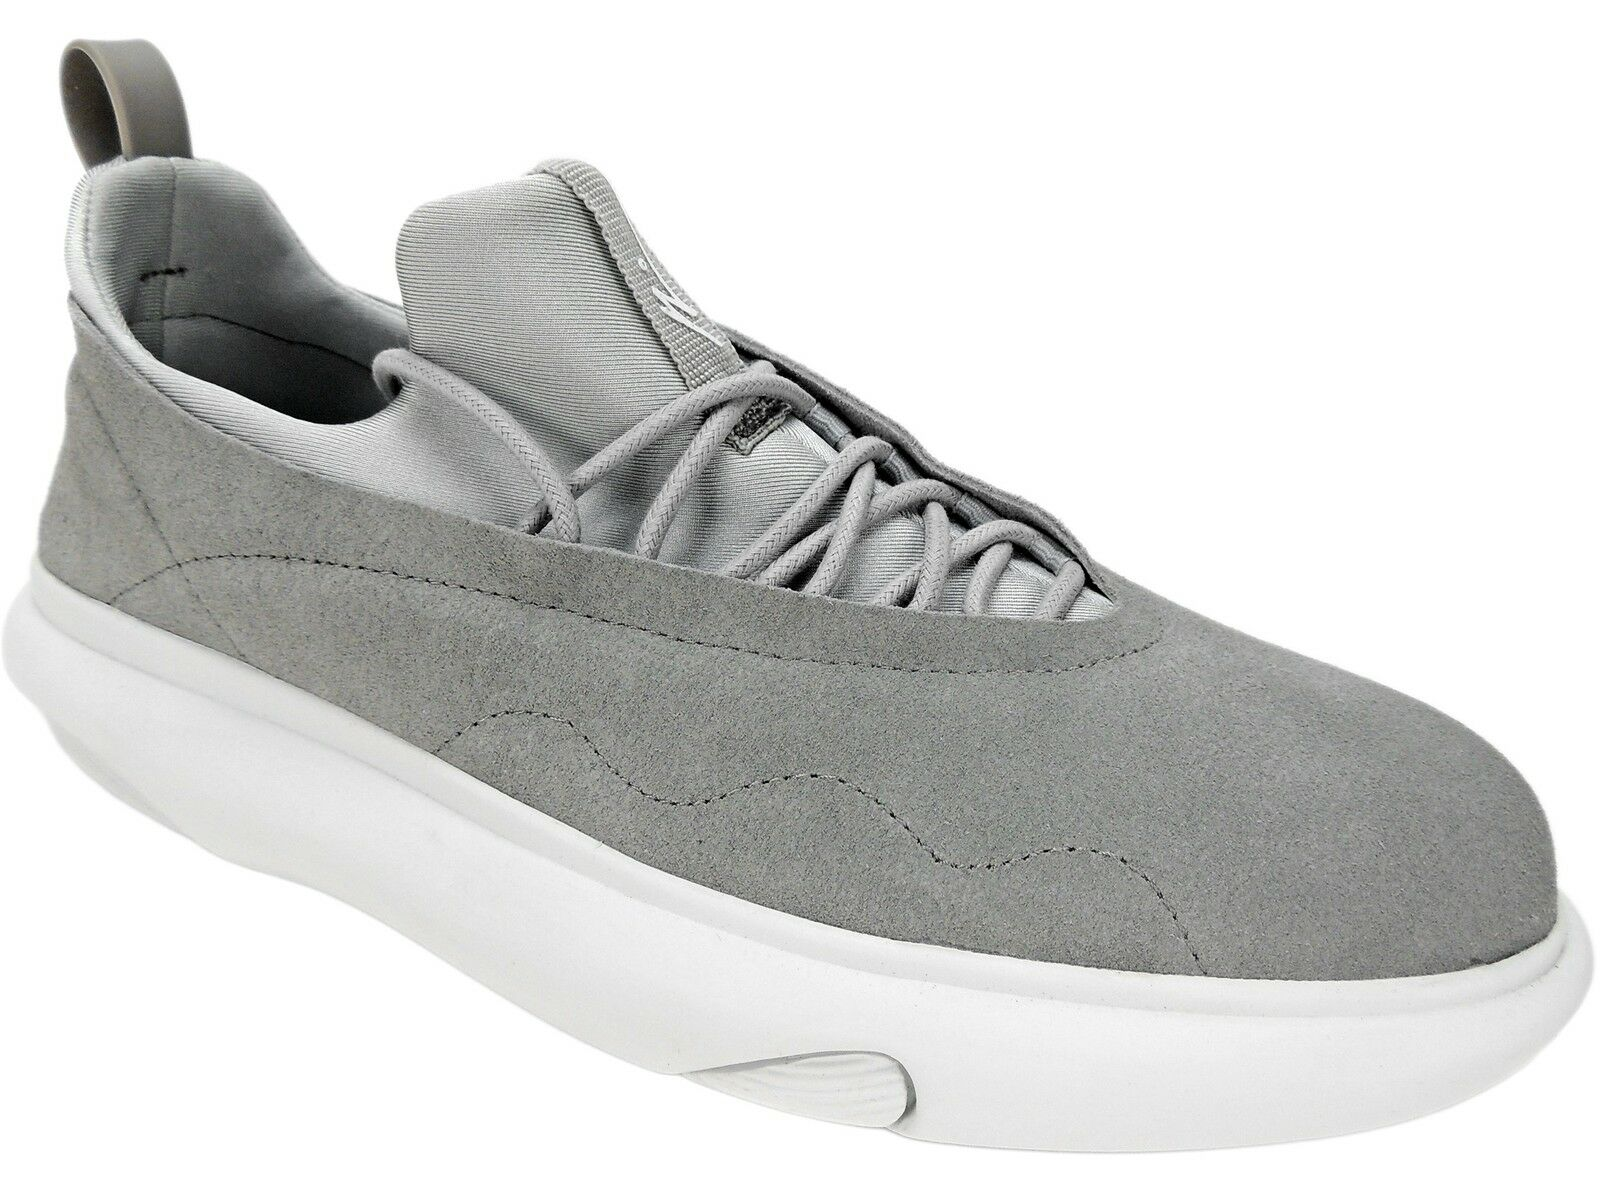 08ac7358f9442 Article No Men s 0502 Casual Suede Sneakers Light Pastel Grey Size ...